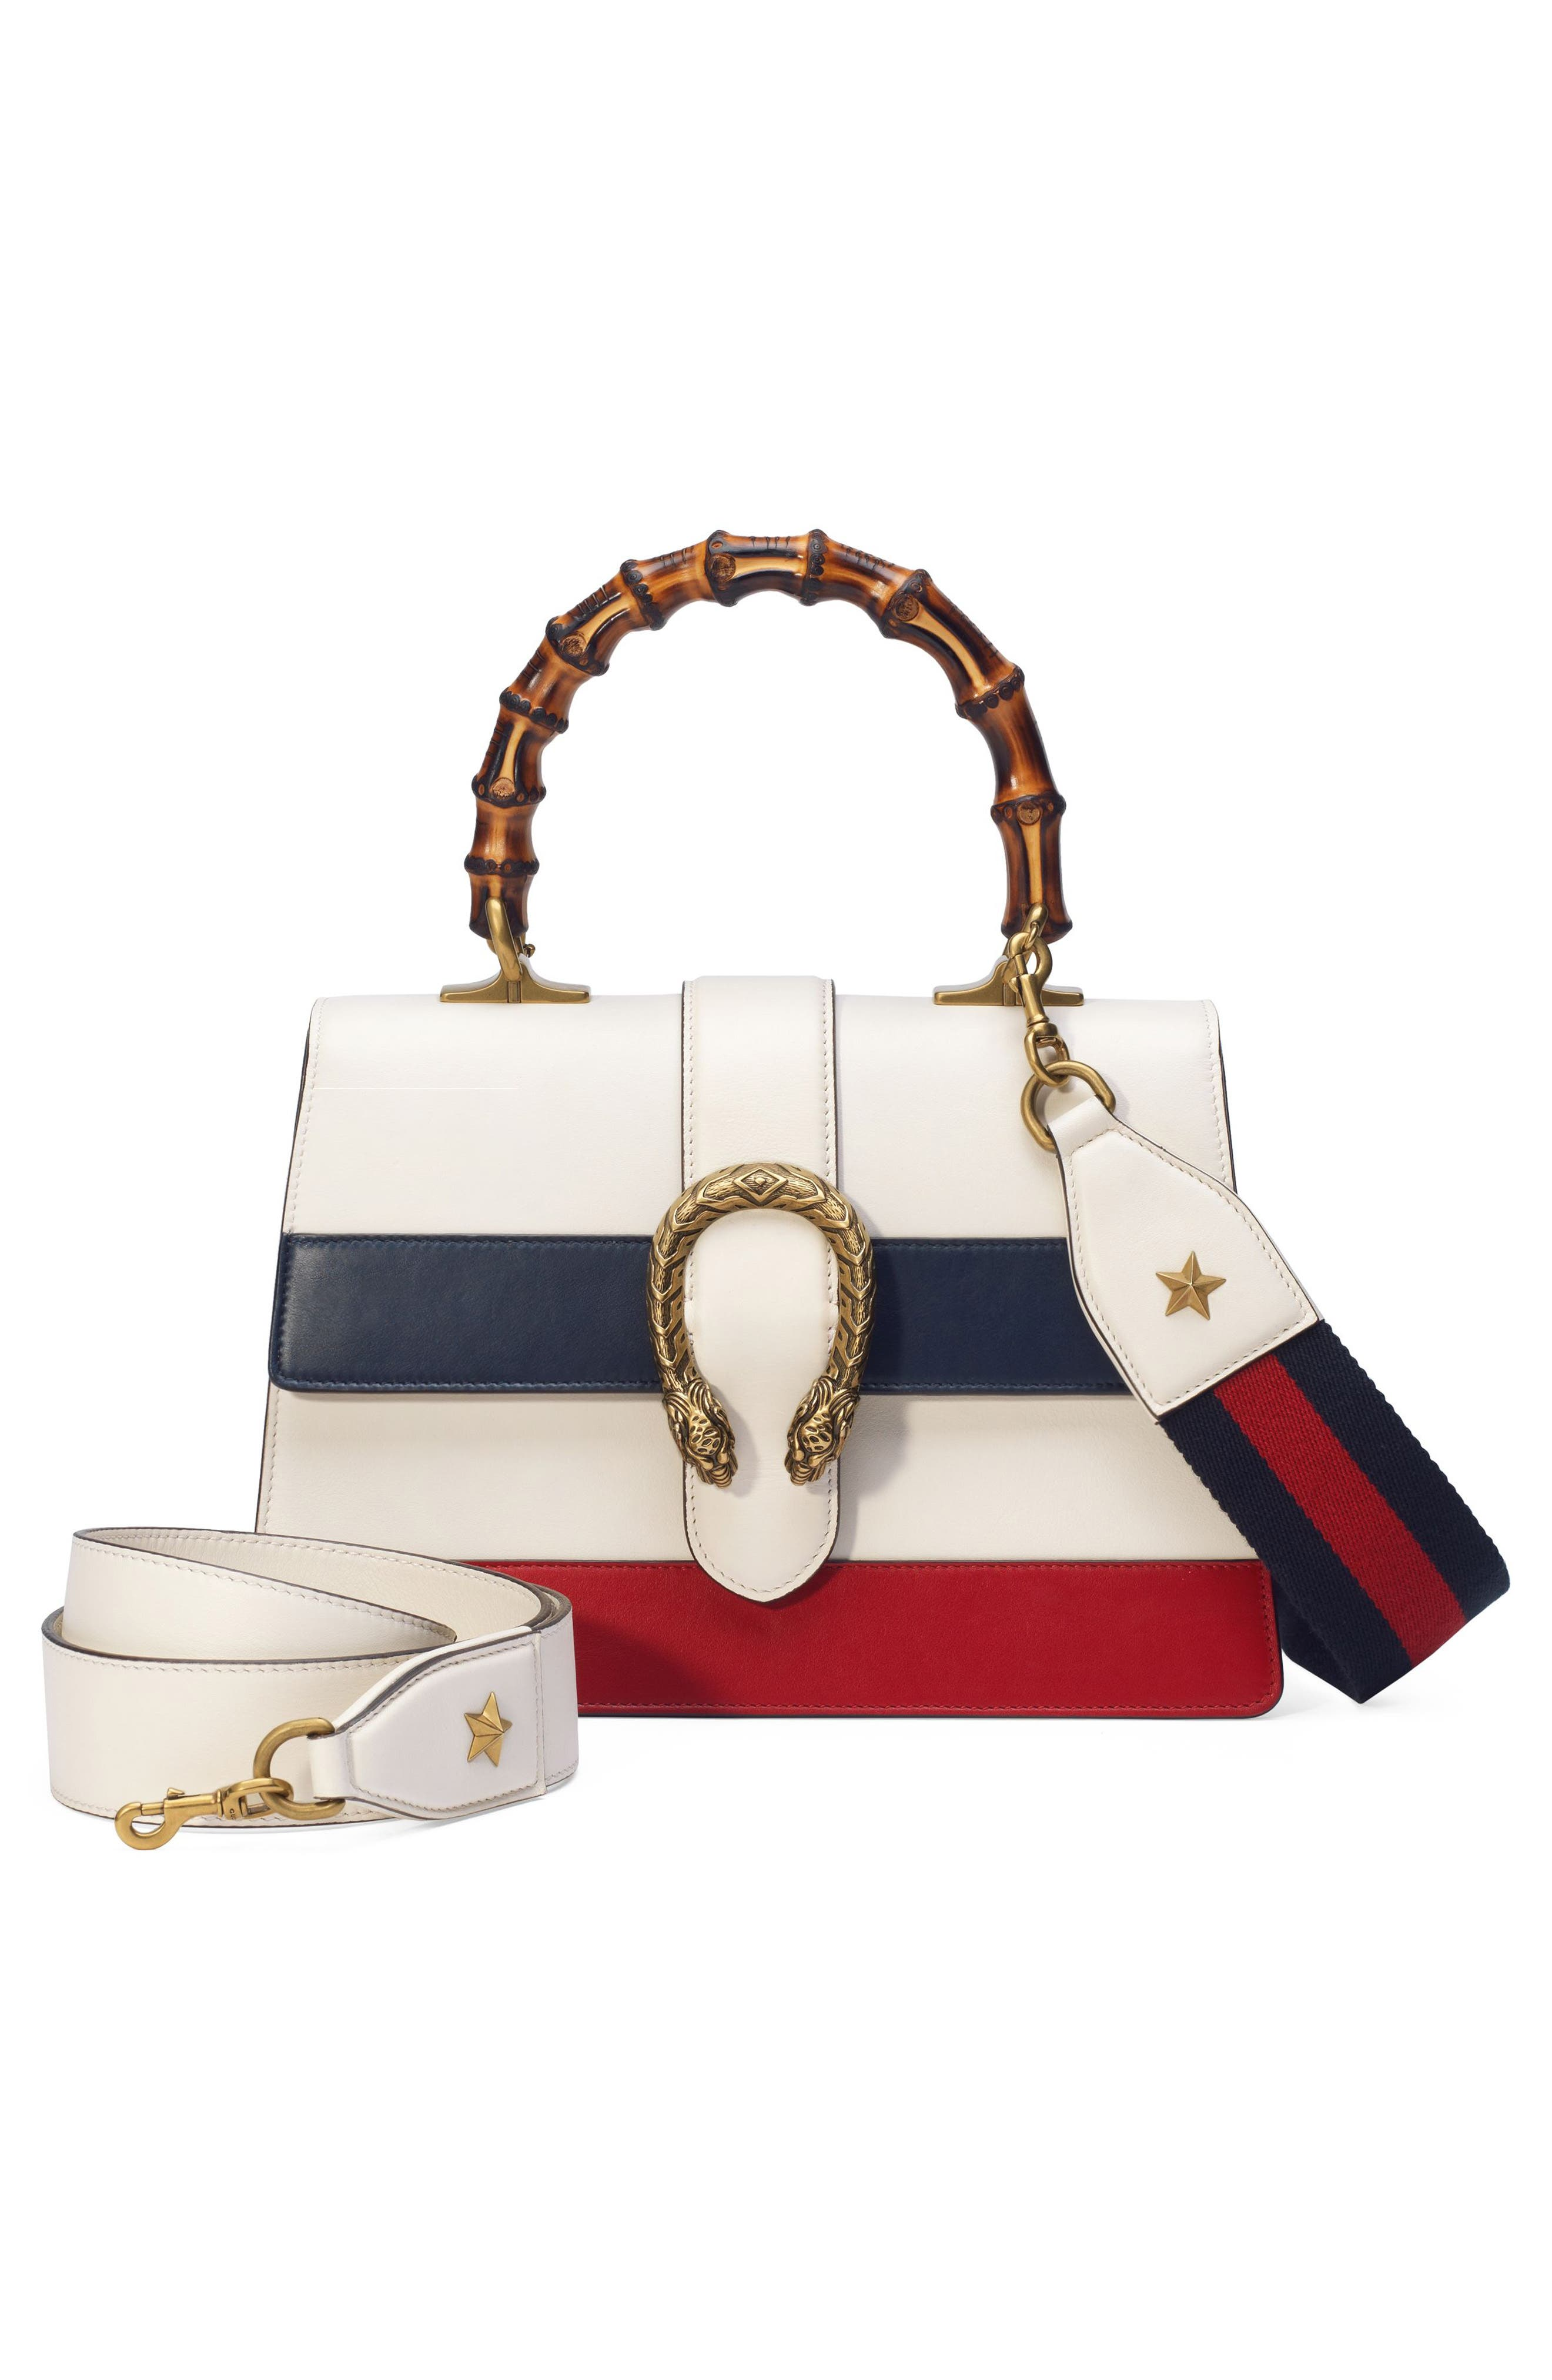 Small Dionysus Top Handle Leather Shoulder Bag,                             Alternate thumbnail 6, color,                             MYSTIC WHITE/ BLUE/ RED